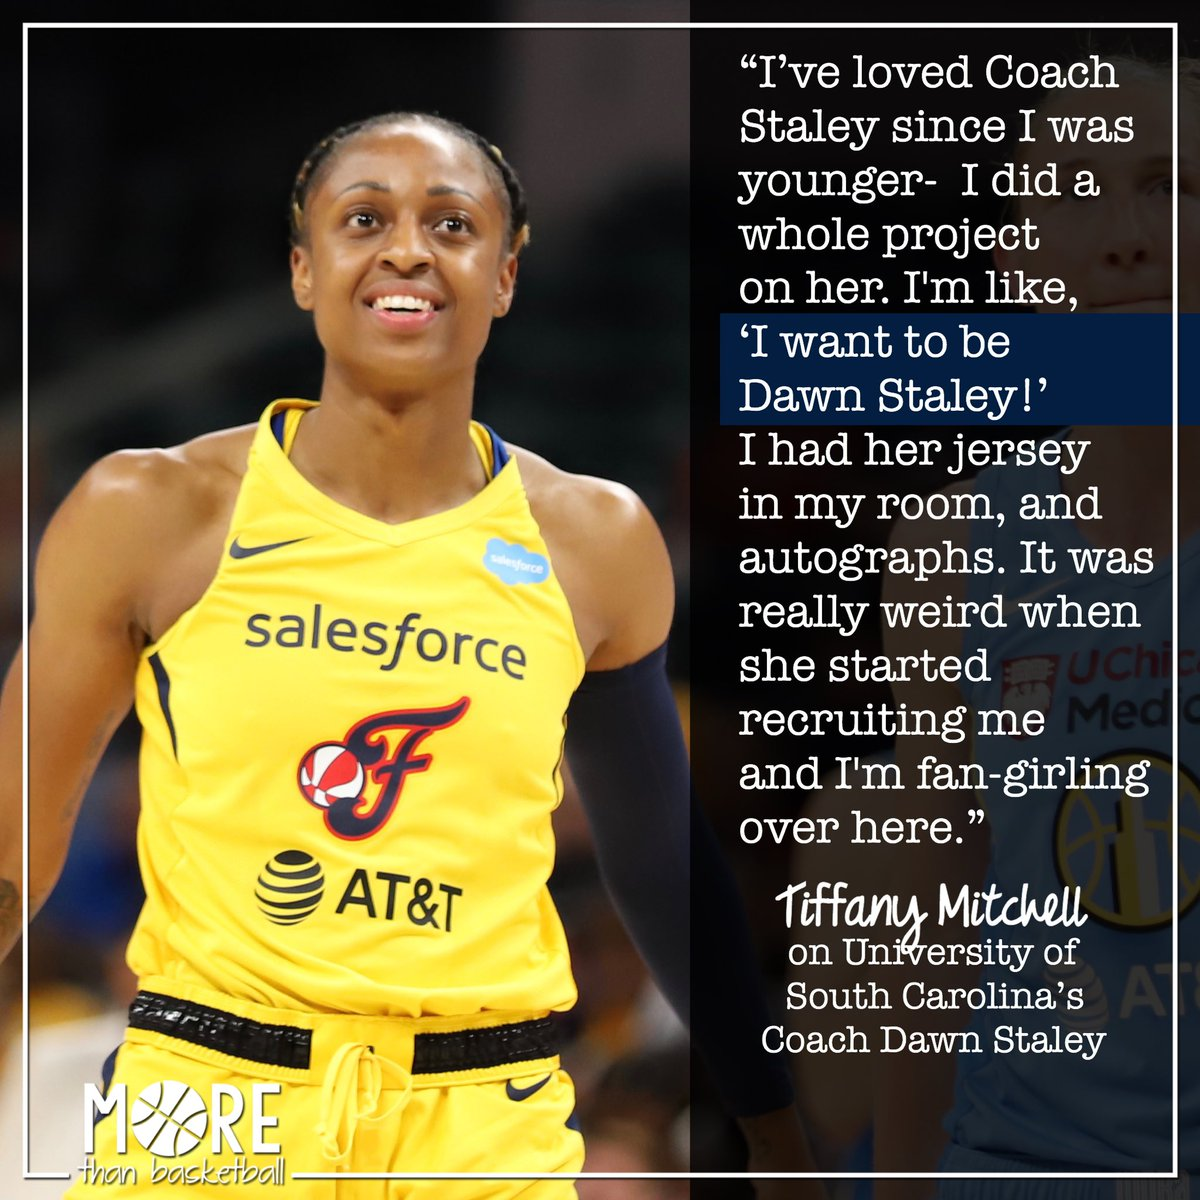 When @TiffMitch25 was younger, she loved @dawnstaley. In college, Tiffany got to play under her childhood basketball hero. This is one of many reasons it matters to have WNBA players that little girls can look up to. . #wnba #indianafever #fever20 #allforlove